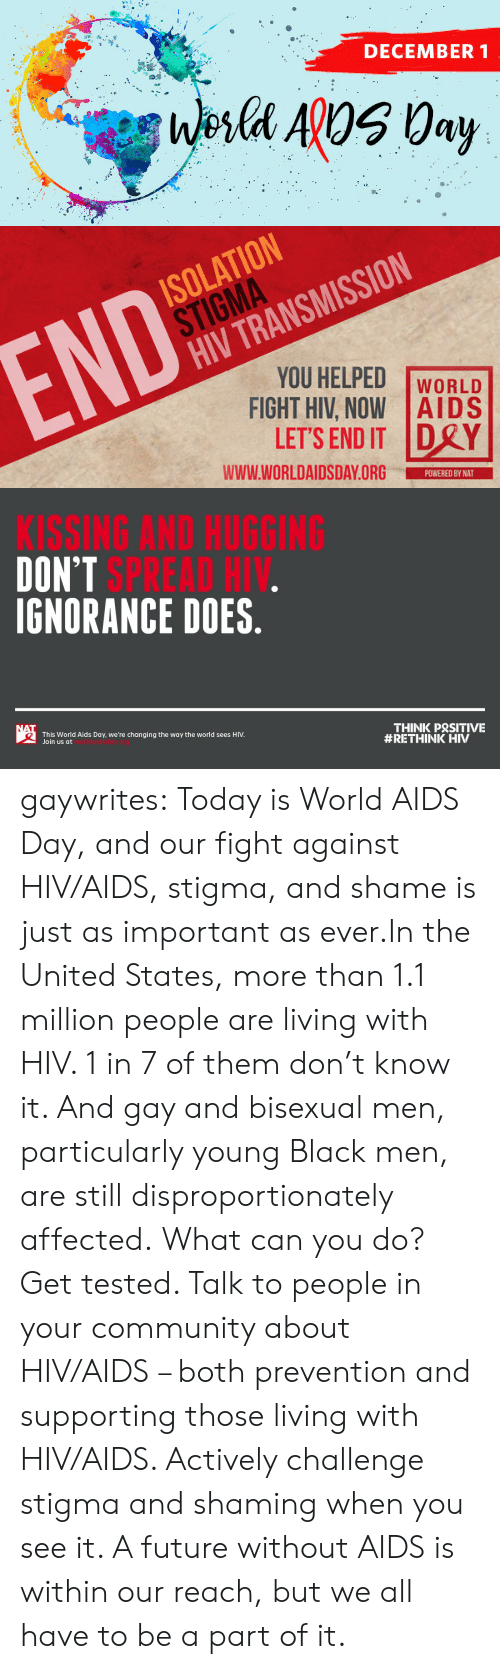 Ignorance: DECEMBER 1  Wesla ApOS 0ay   ISOLATION  STIGMA  HIV TRANSMISSION  END  YOU HELPED  FIGHT HIV, NOW AIDS  LET'S END IT DRY  WORLD  www.WORLDAIDSDAY.ORG  POWERED BY NAT   KISSING AND HUGGING  DON'T SPREAD HIV.  IGNORANCE DOES.  NAT  THINK PRSITIVE  #RETHINK HIV  This World Aids Day, we're changing the way the world sees HIV.  Join us at gaywrites:  Today is World AIDS Day, and our fight against HIV/AIDS, stigma, and shame is just as important as ever.In the United States, more than 1.1 million people are living with HIV. 1 in 7 of them don't know it. And gay and bisexual men, particularly young Black men, are still disproportionately affected. What can you do? Get tested. Talk to people in your community about HIV/AIDS – both prevention and supporting those living with HIV/AIDS. Actively challenge stigma and shaming when you see it. A future without AIDS is within our reach, but we all have to be a part of it.